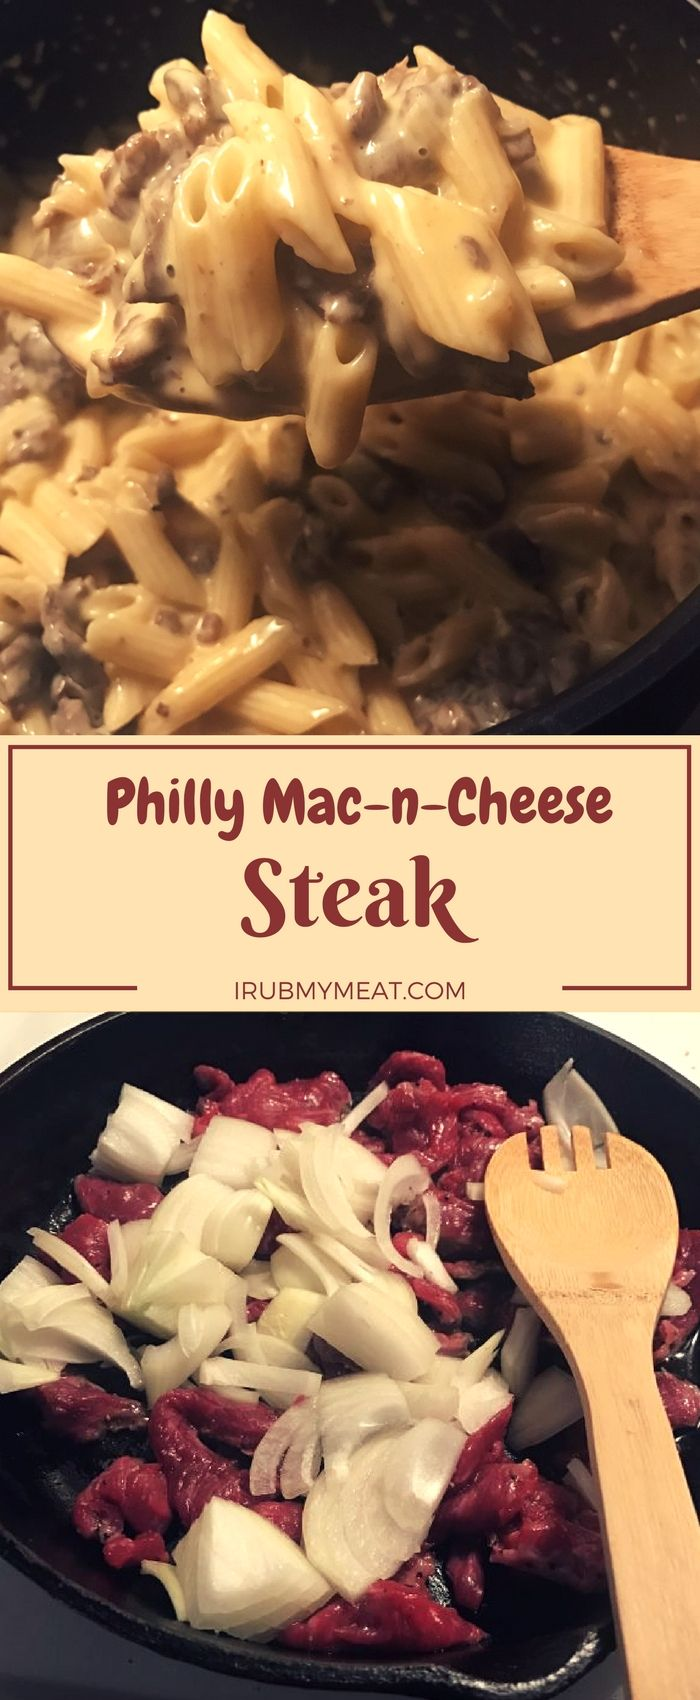 Philly Cheese Steaks are made using rib-eye or top round, but you can use other cuts of beef as well. I usually choose a thick cut steak with good marbling and color. If you toss it in the freezer for 20 or 30 minutes it can be much easier to slice thinner pieces. irubmymeat.com